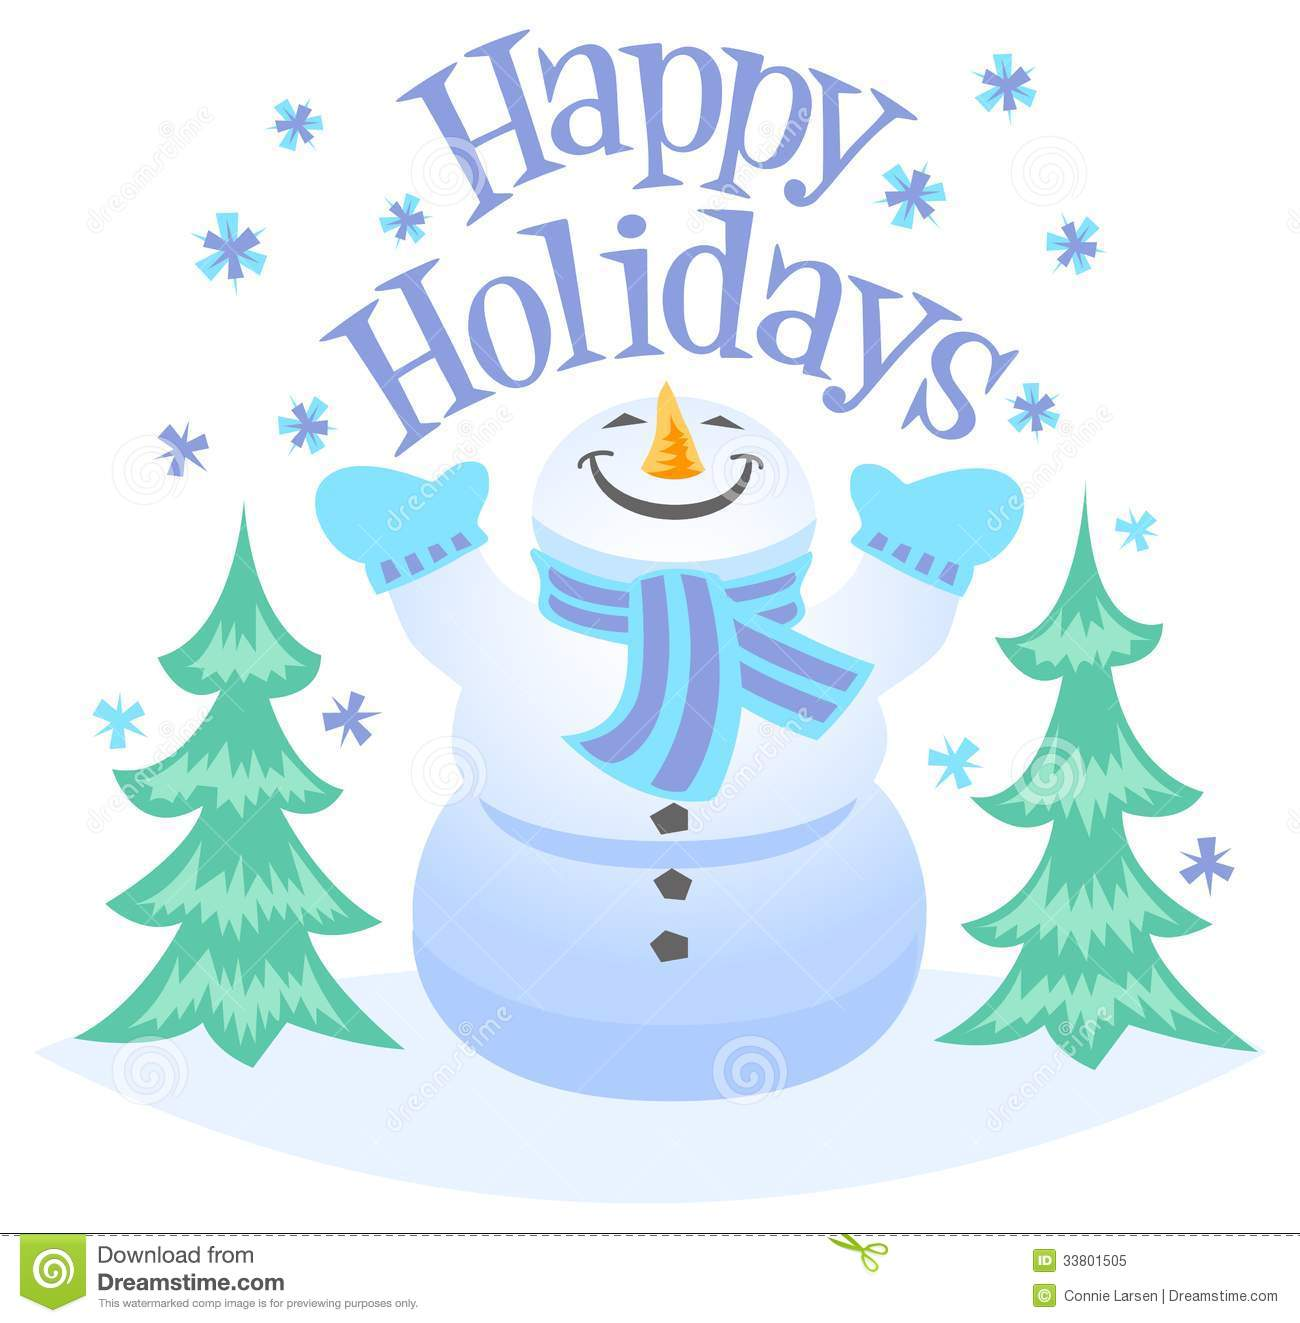 Happy Holidays Snowman Clipart .-Happy Holidays Snowman Clipart .-13